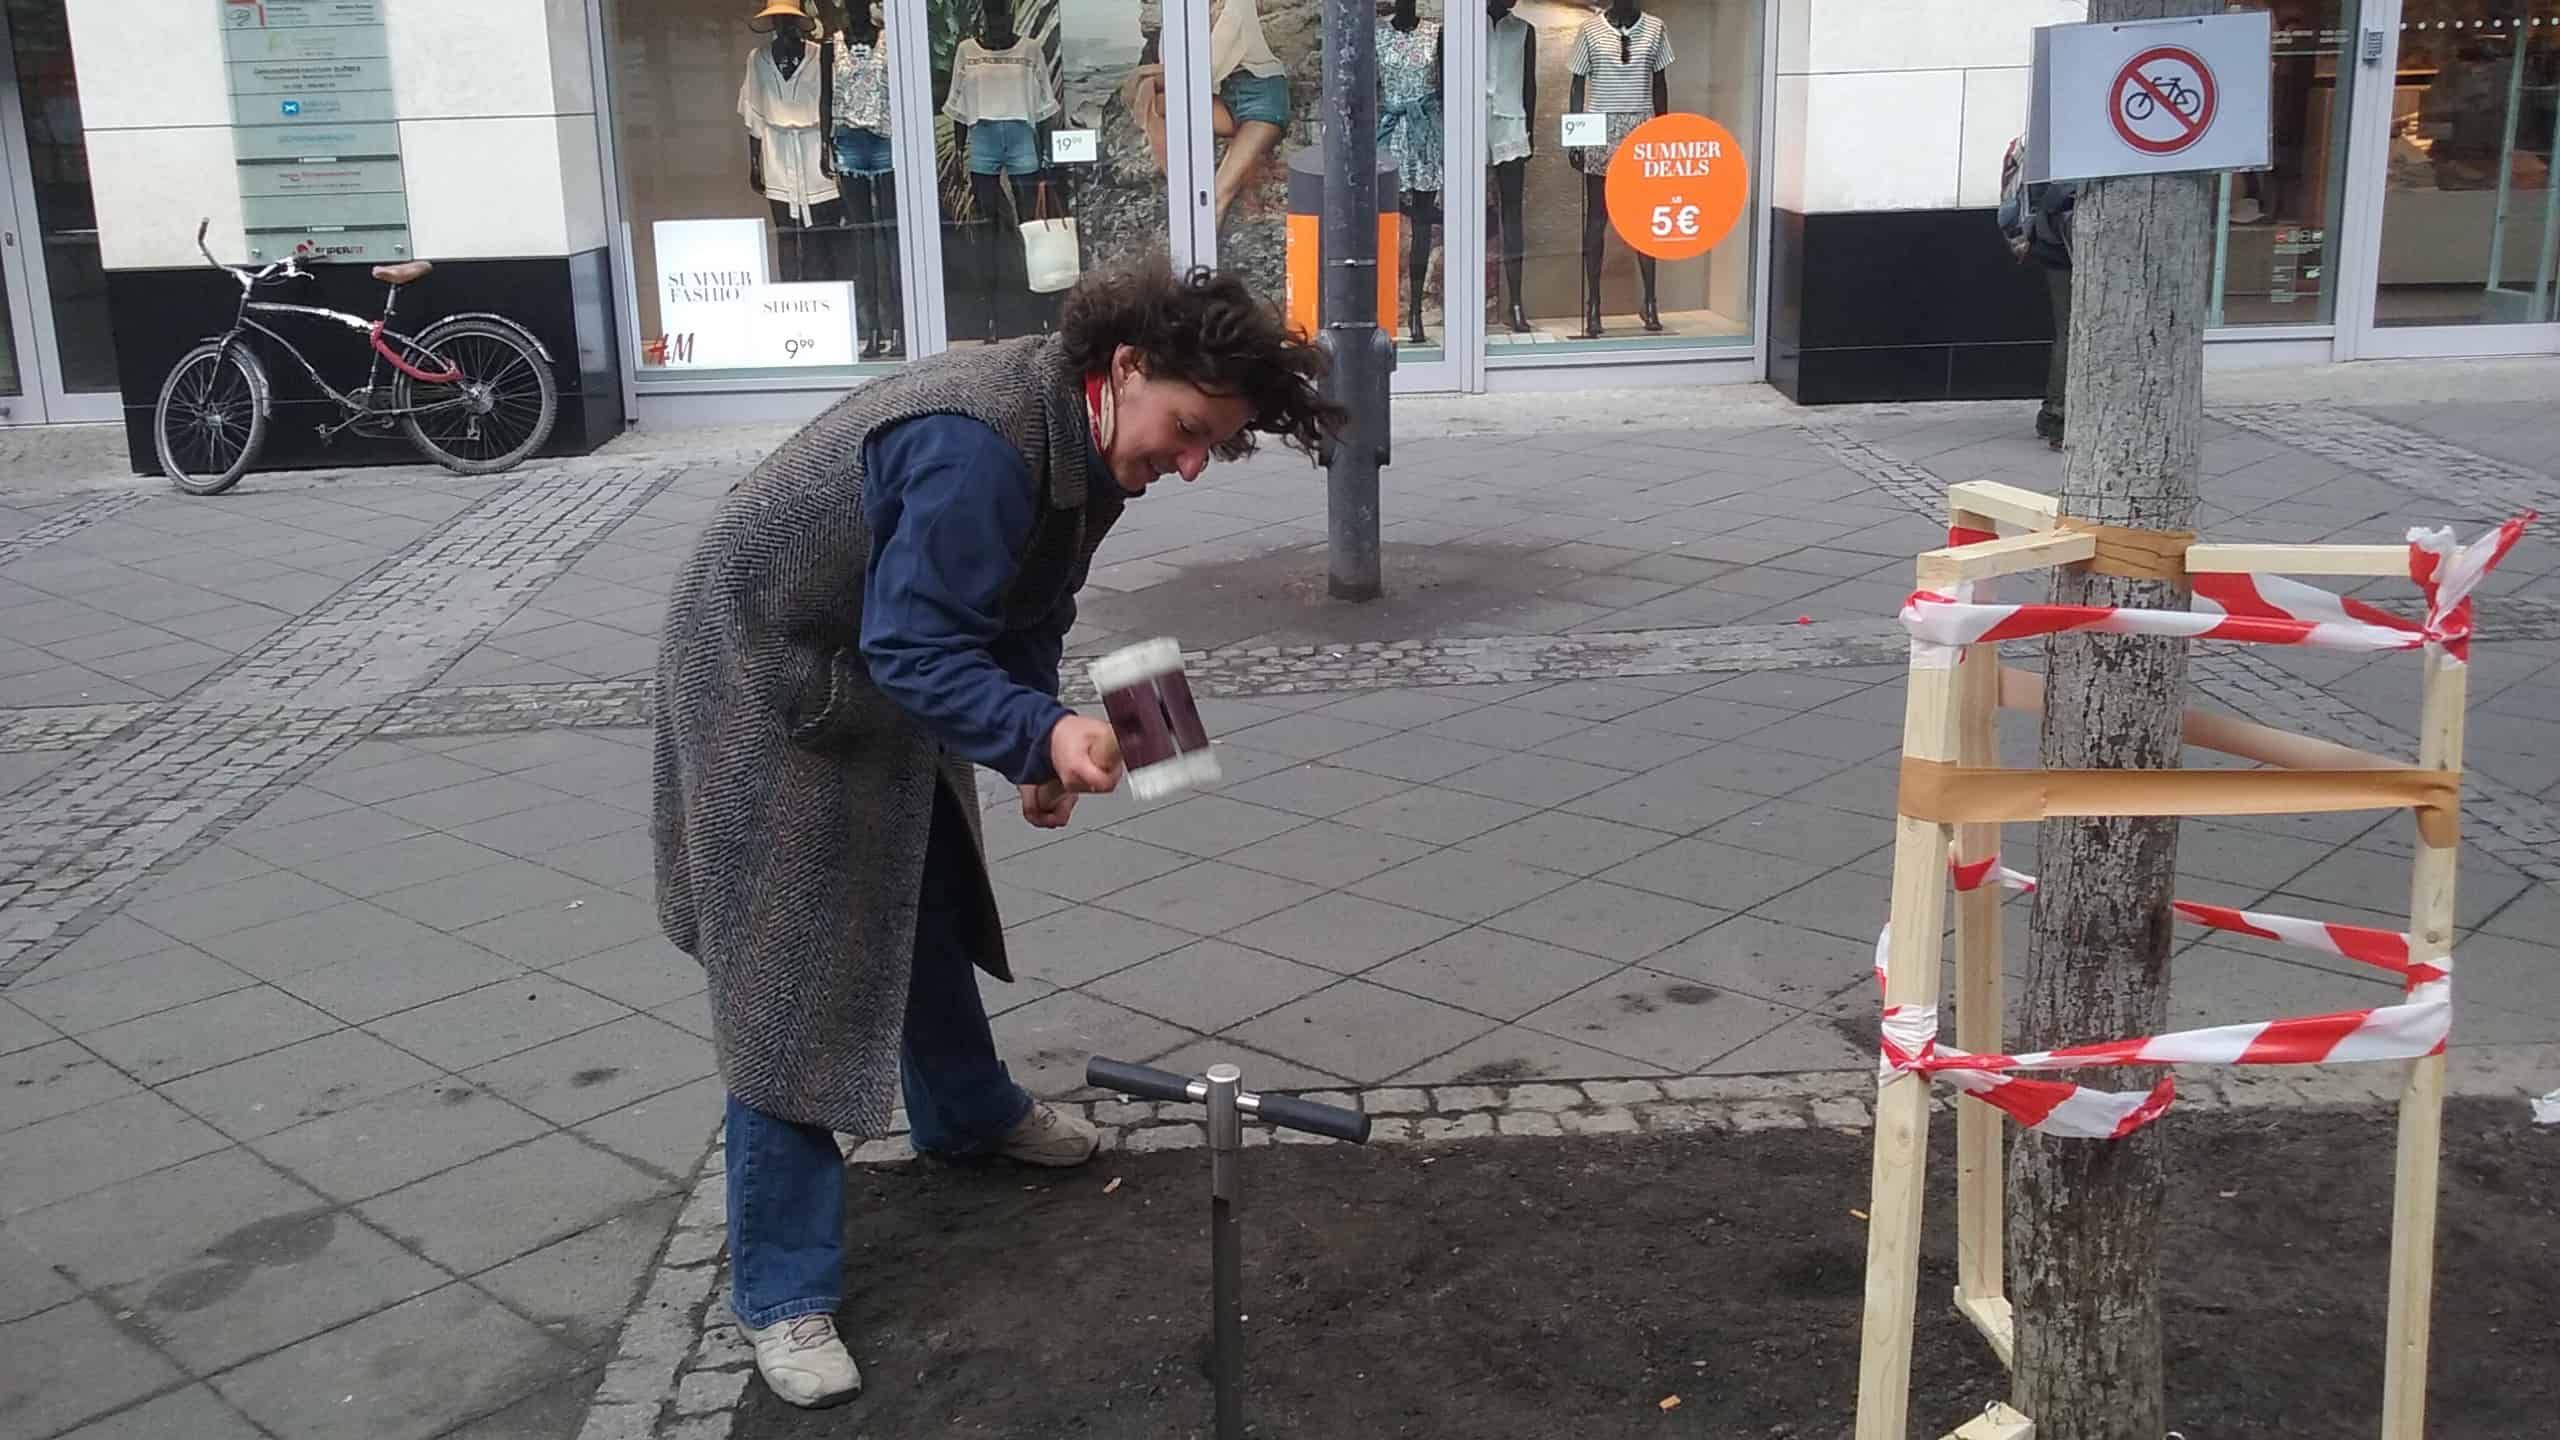 working on an experiment within the public space in the central area of Berlin